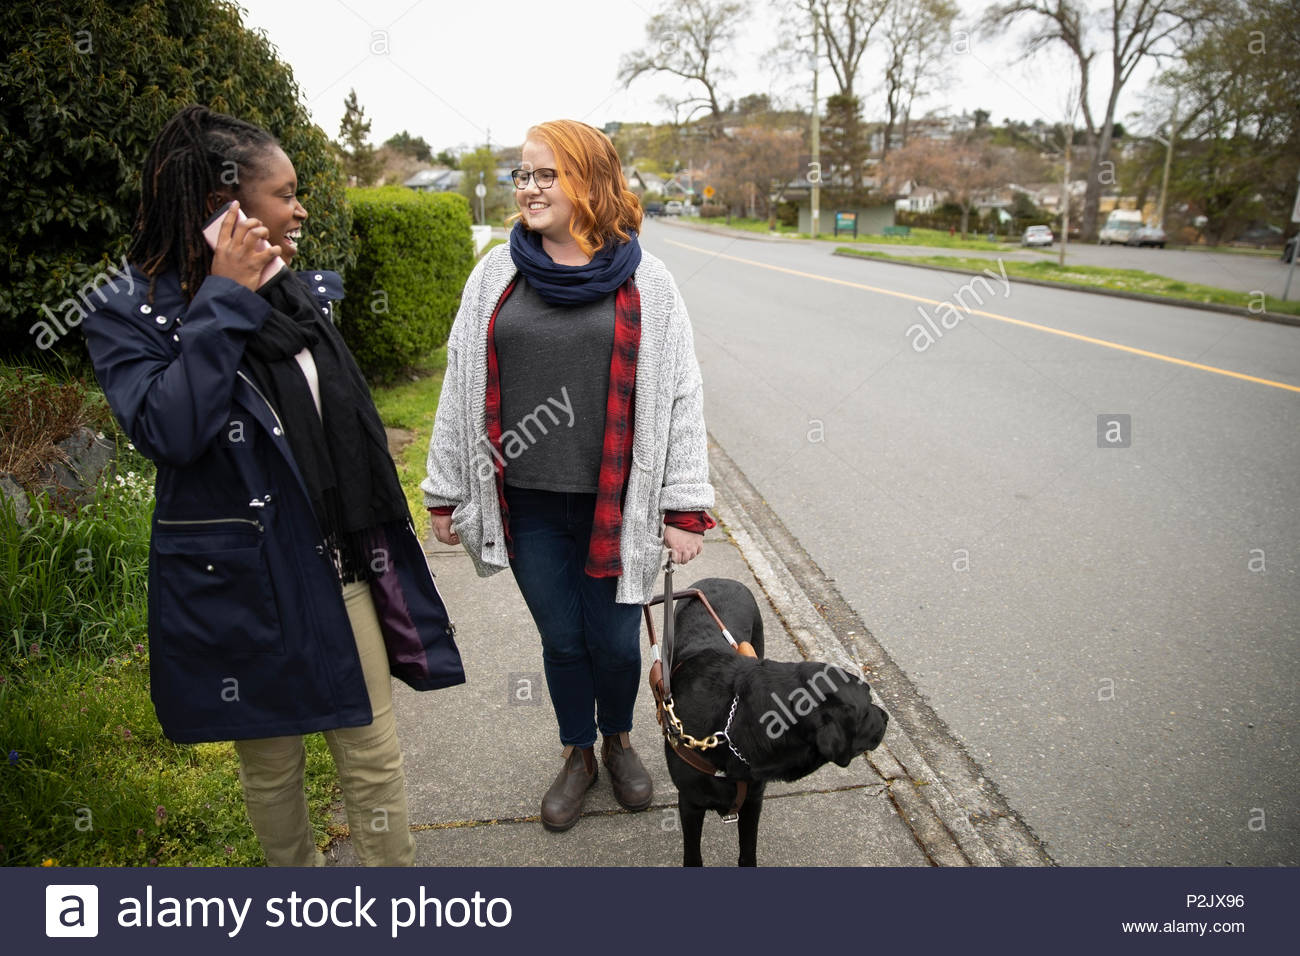 Visually impaired woman with seeing eye dog talking with friend on sidewalk - Stock Image